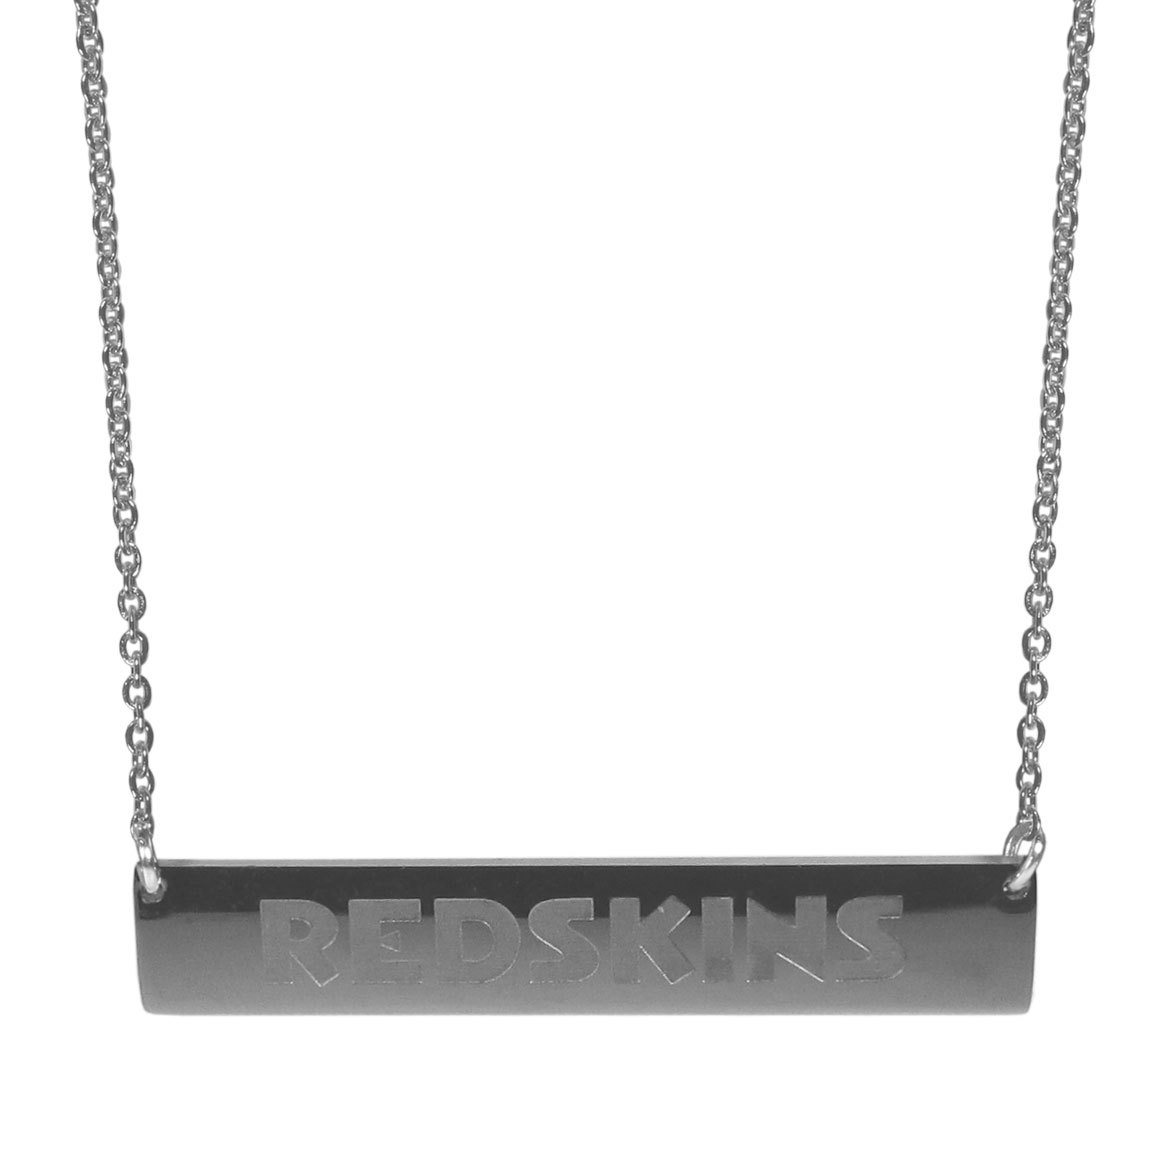 Washington Redskins Bar Necklace - Simply beautiful Washington Redskins bar necklace on a 20 inch link chain with 2 inch adjustable extender. This light-weight bar necklace has a stylish silver colored finish with the team name expertly etched on the 1.5 inch bar. Every female  fan will enjoy this contempory fashion accessory.